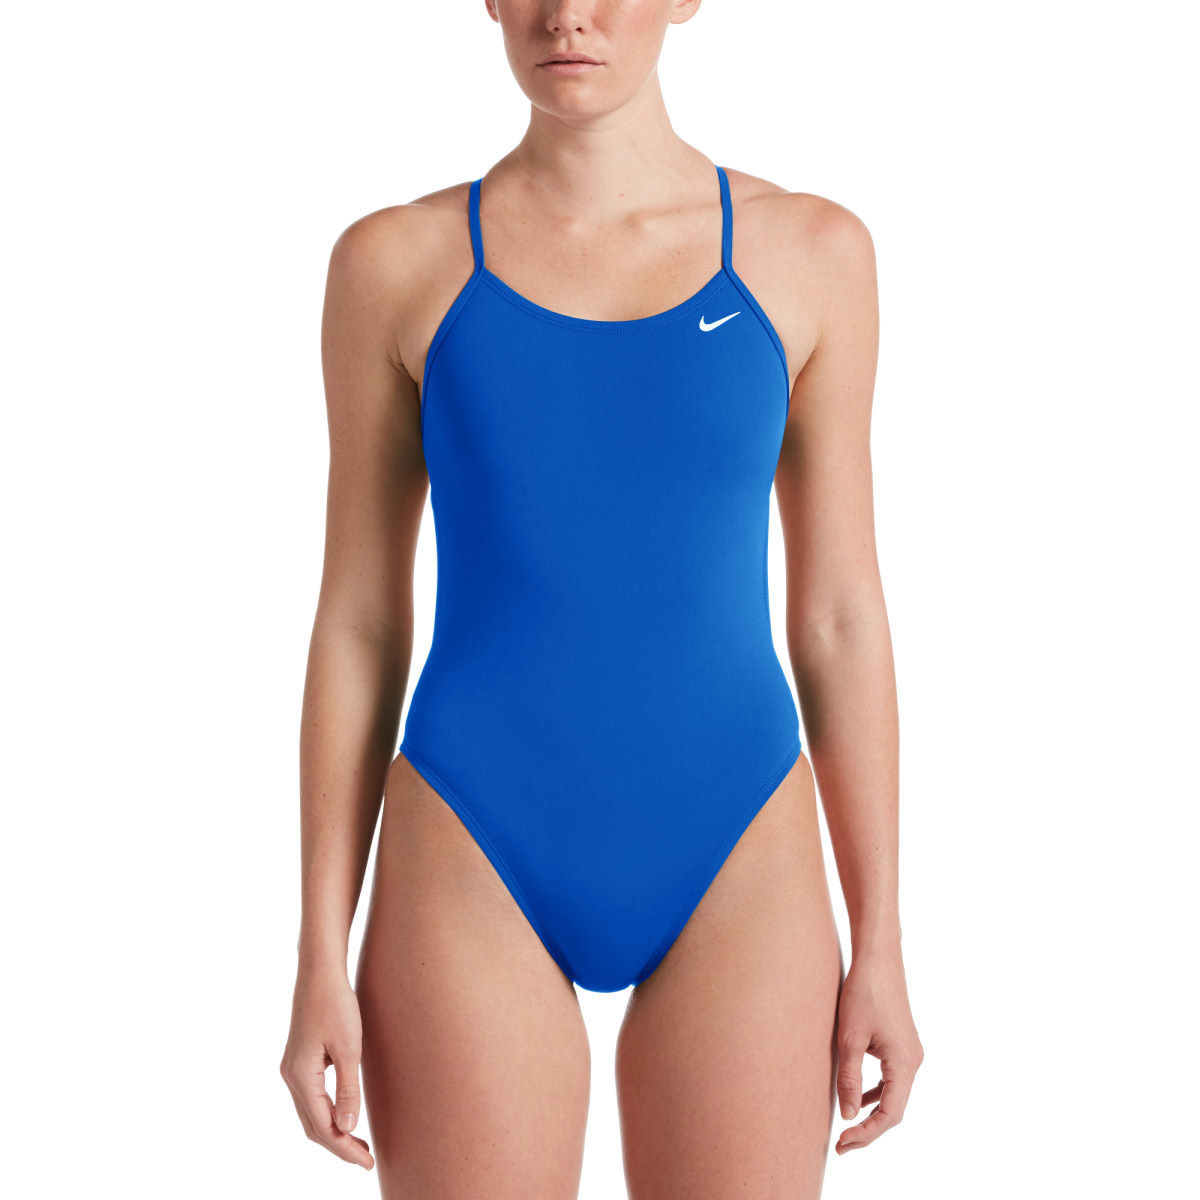 Nike Womens Hydrastrong Swimsuit (cutout) - 36 494 Game Royal